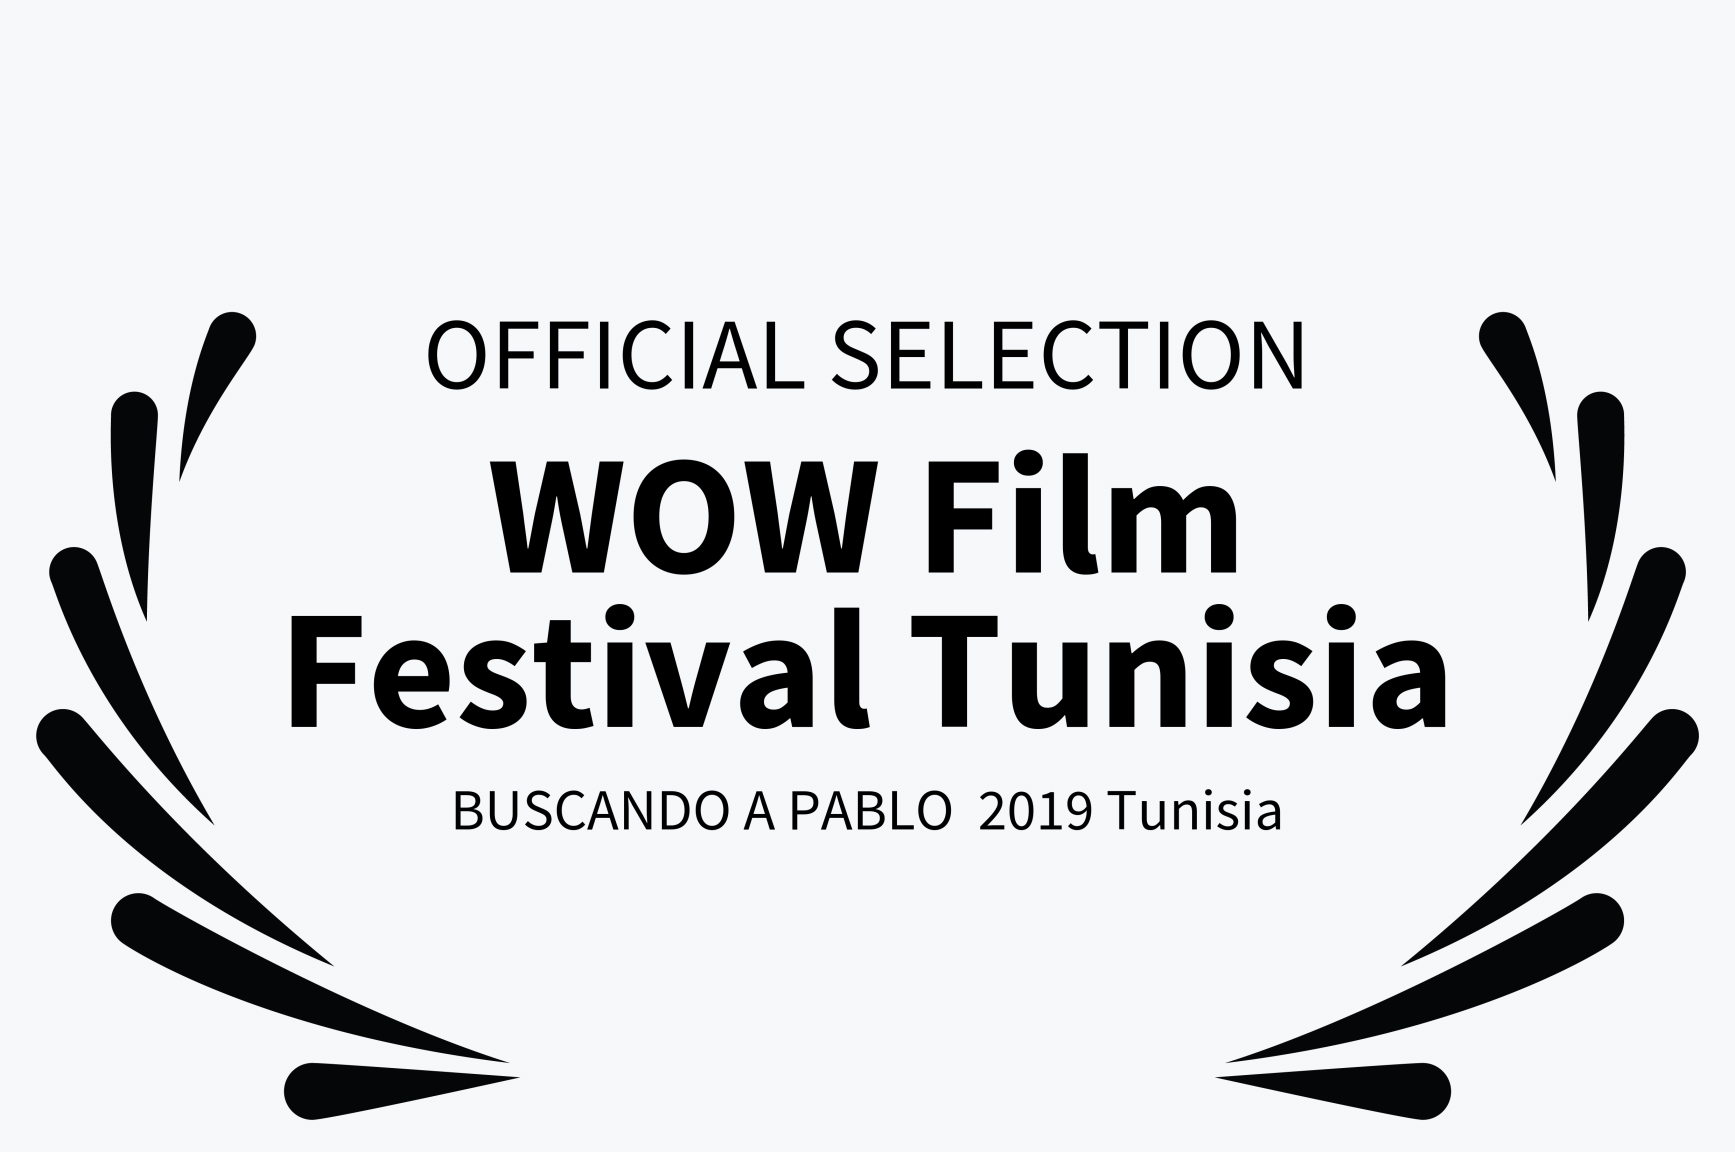 OFFICIAL SELECTION - WOW Film Festival T